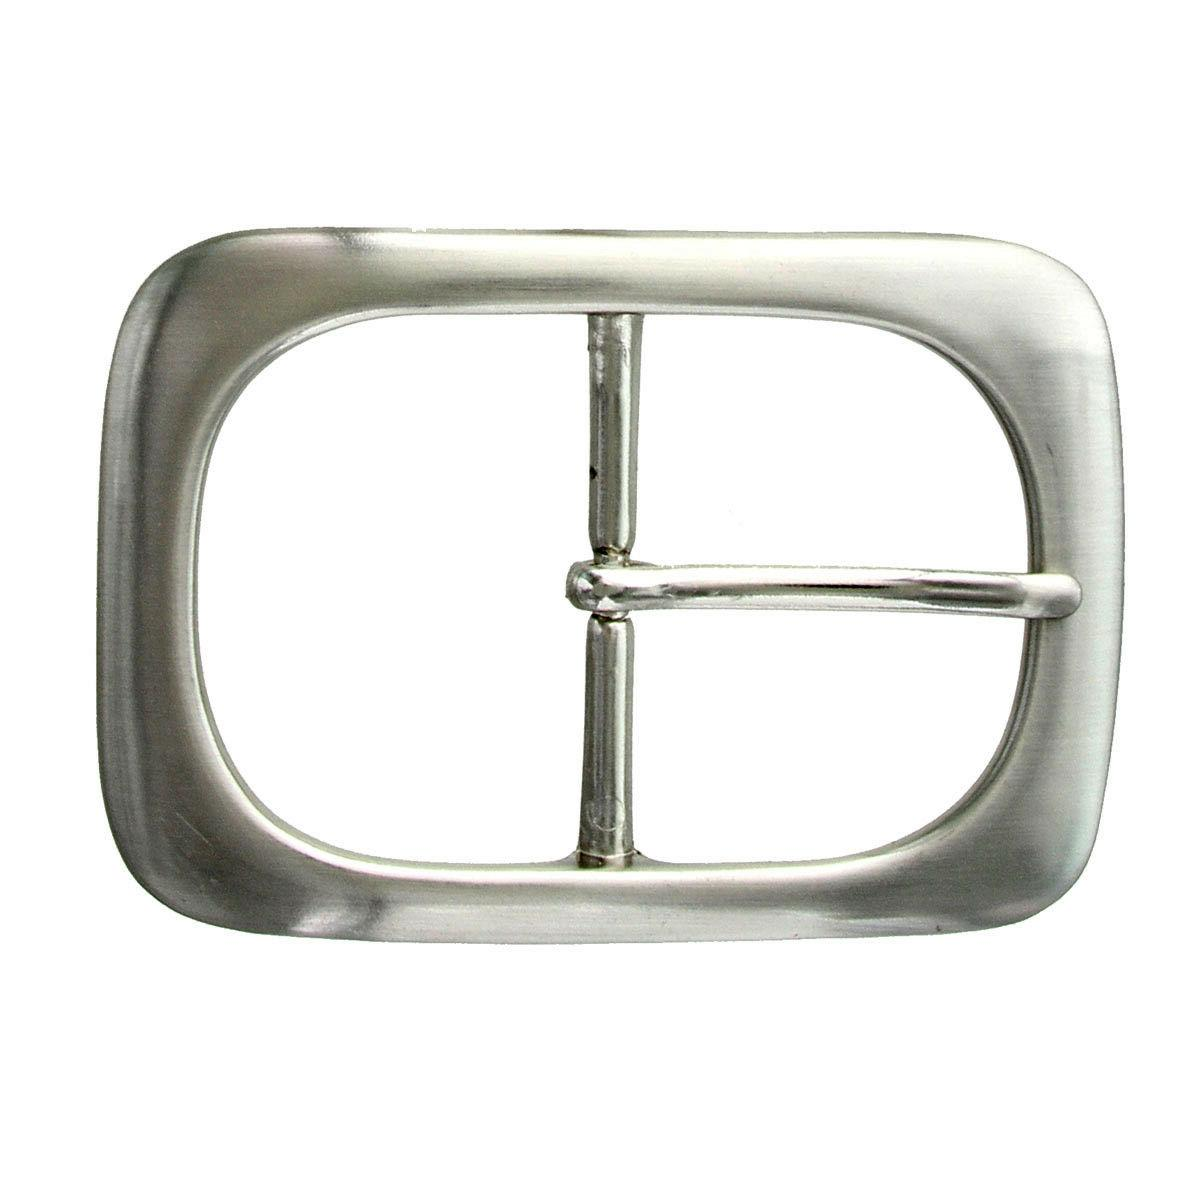 CENTER BAR REPLACEMENT BUCKLE FINISHES